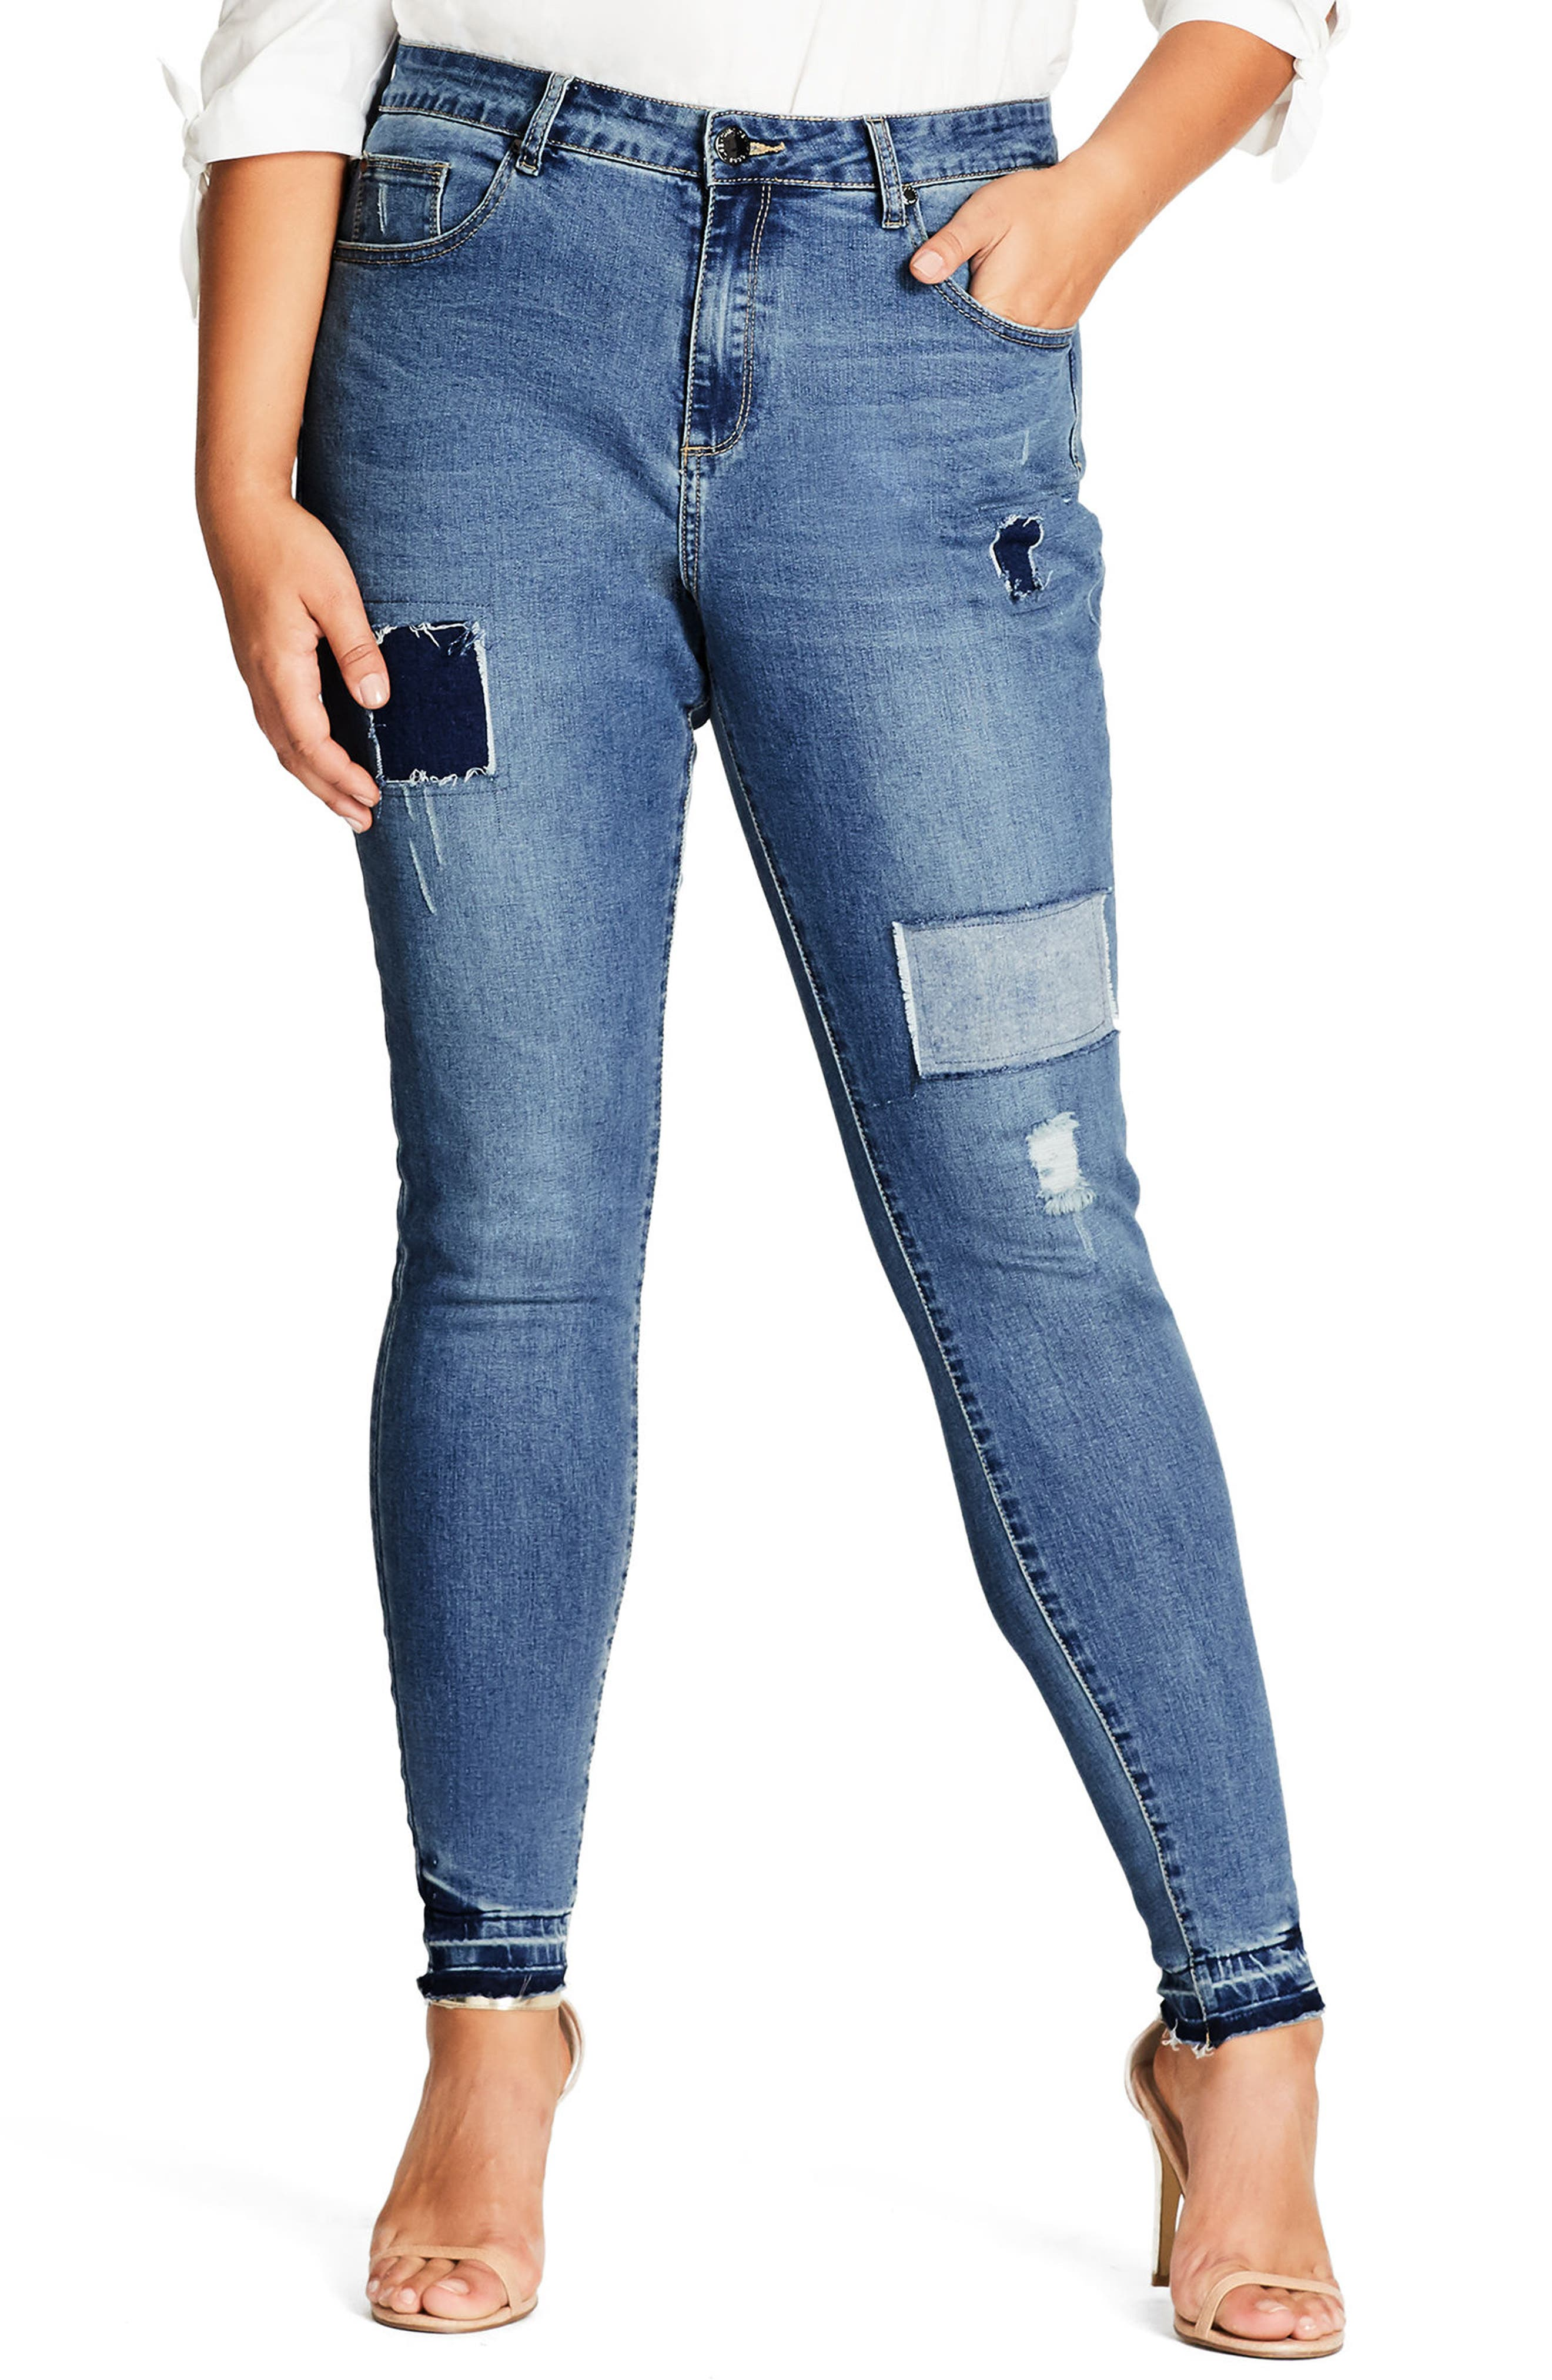 Main Image - City Chic Patched Released Hem Skinny Jeans (Plus Size)